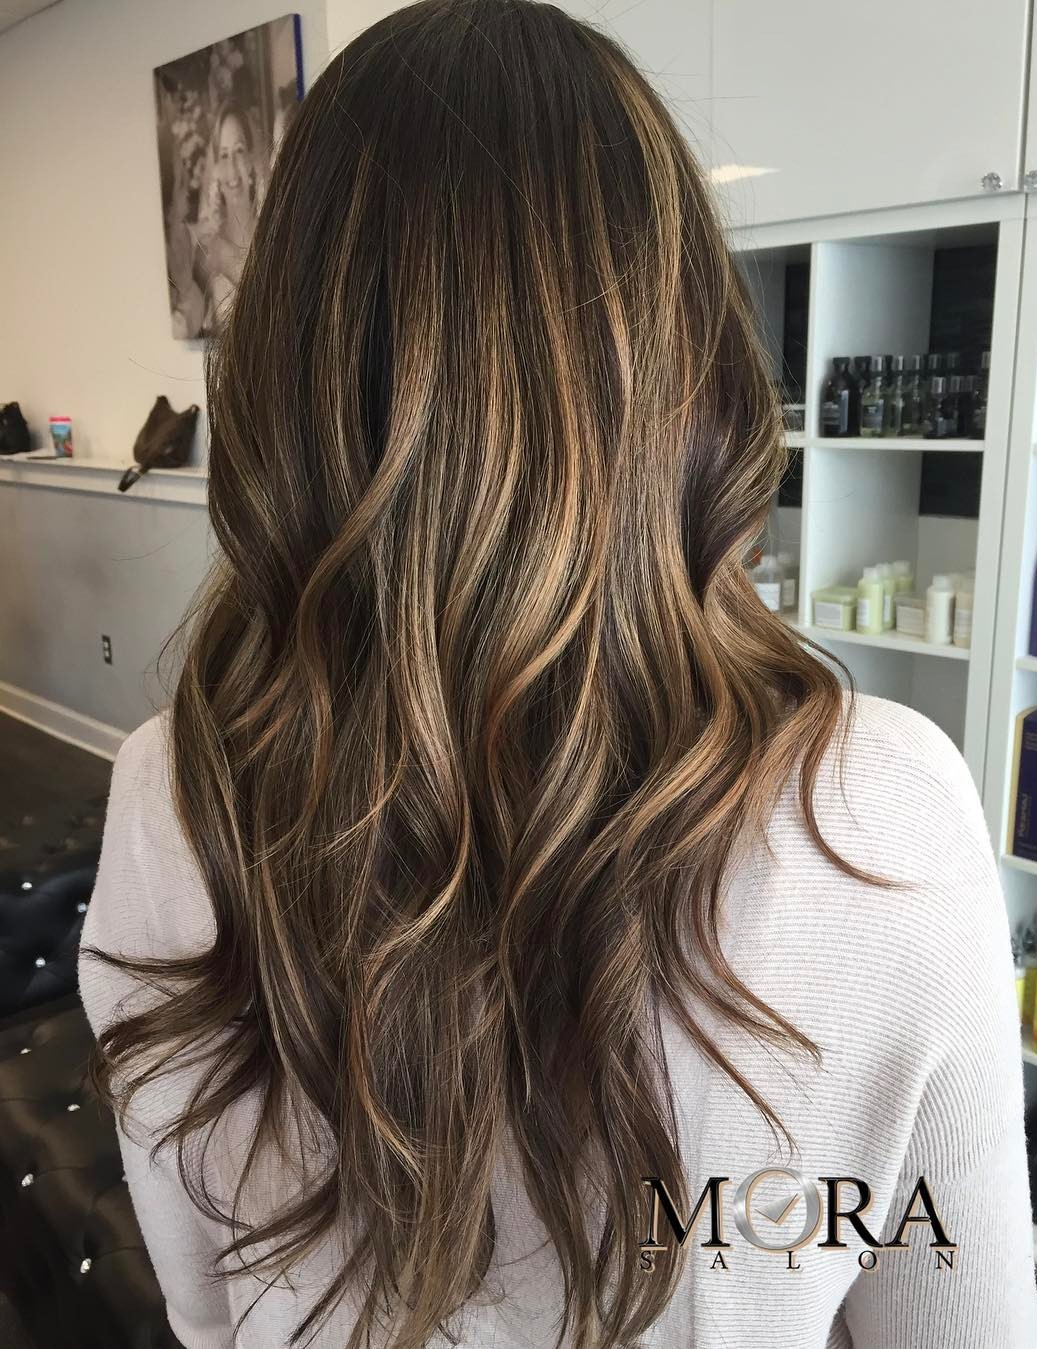 Brown Long Hair with Layers and Balayage